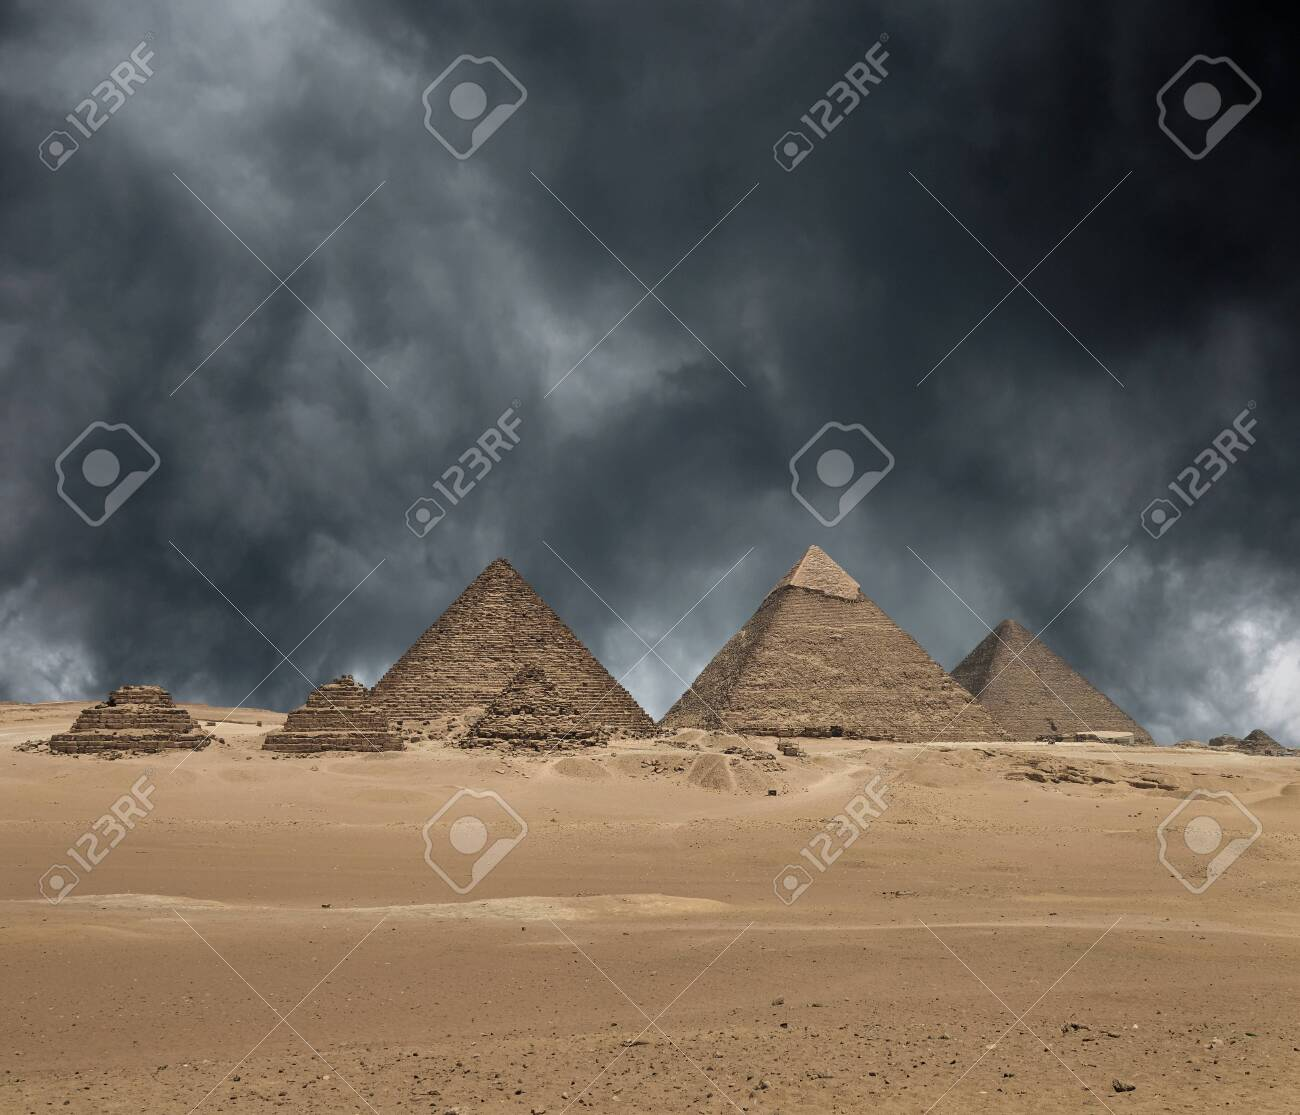 The Giza pyramid complex, or the Giza Necropolis on the Giza Plateau in Egypt near Cairo includes the Great Pyramid of Giza the Pyramid of Khafre and the Pyramid of Menkaure under dramatic grey stormy sky. Composite image. - 142812703